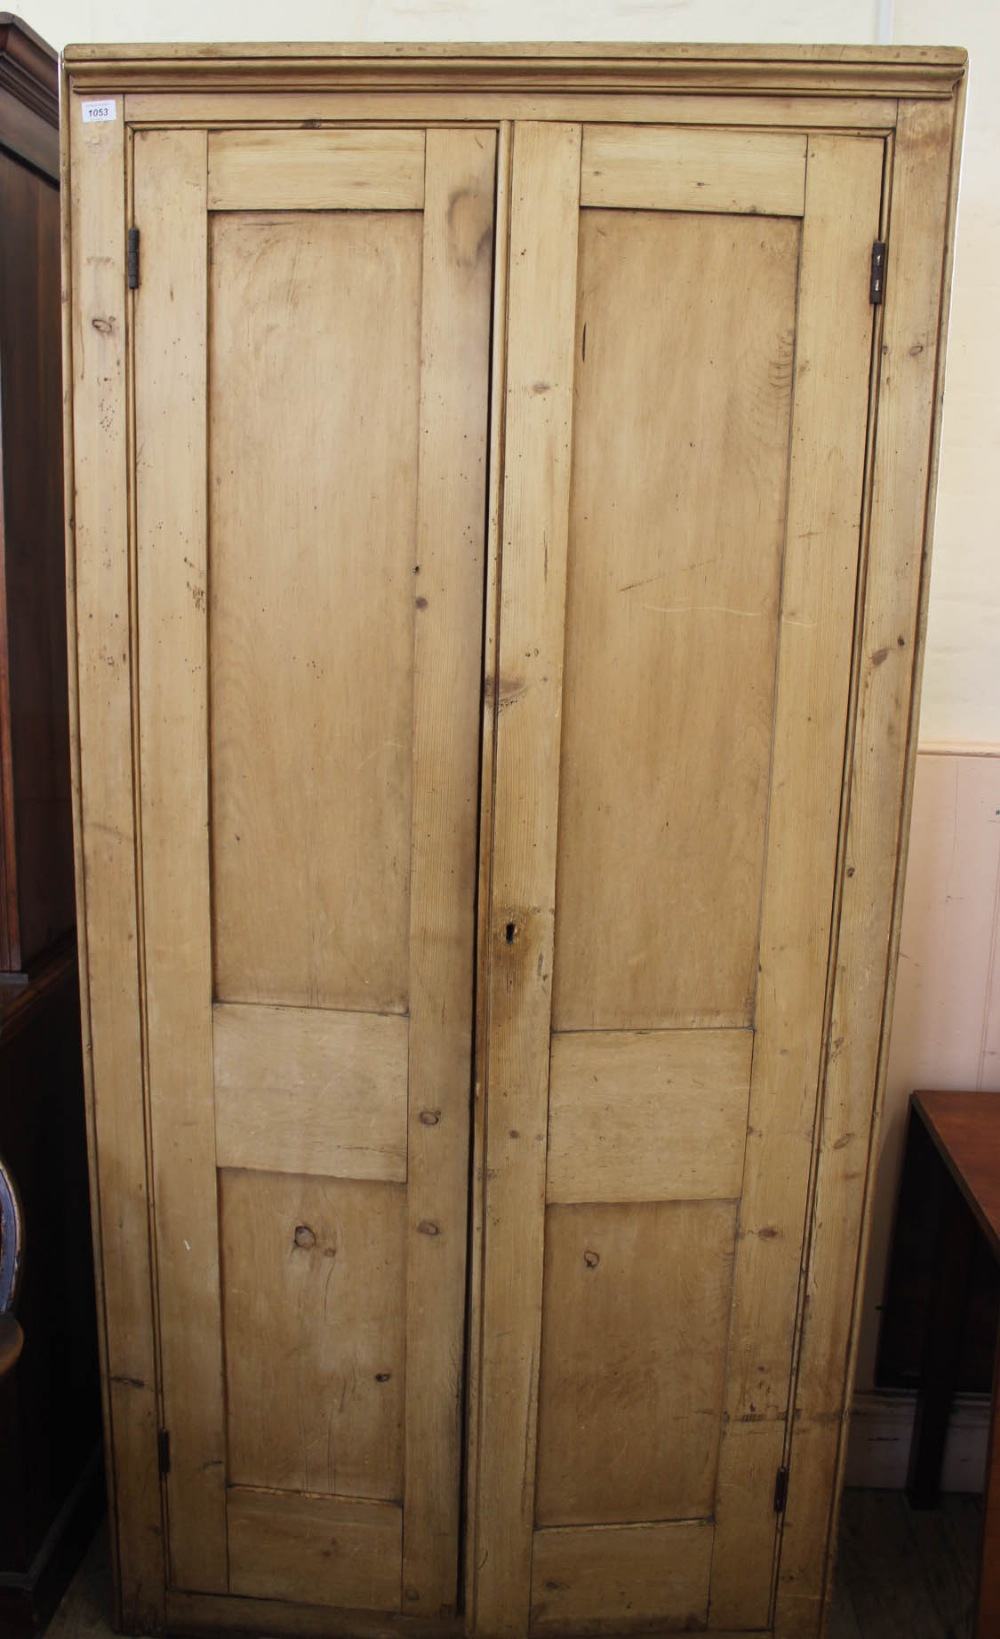 Lot 1053 - A 19th Century two door pine cupboard with shelved interior